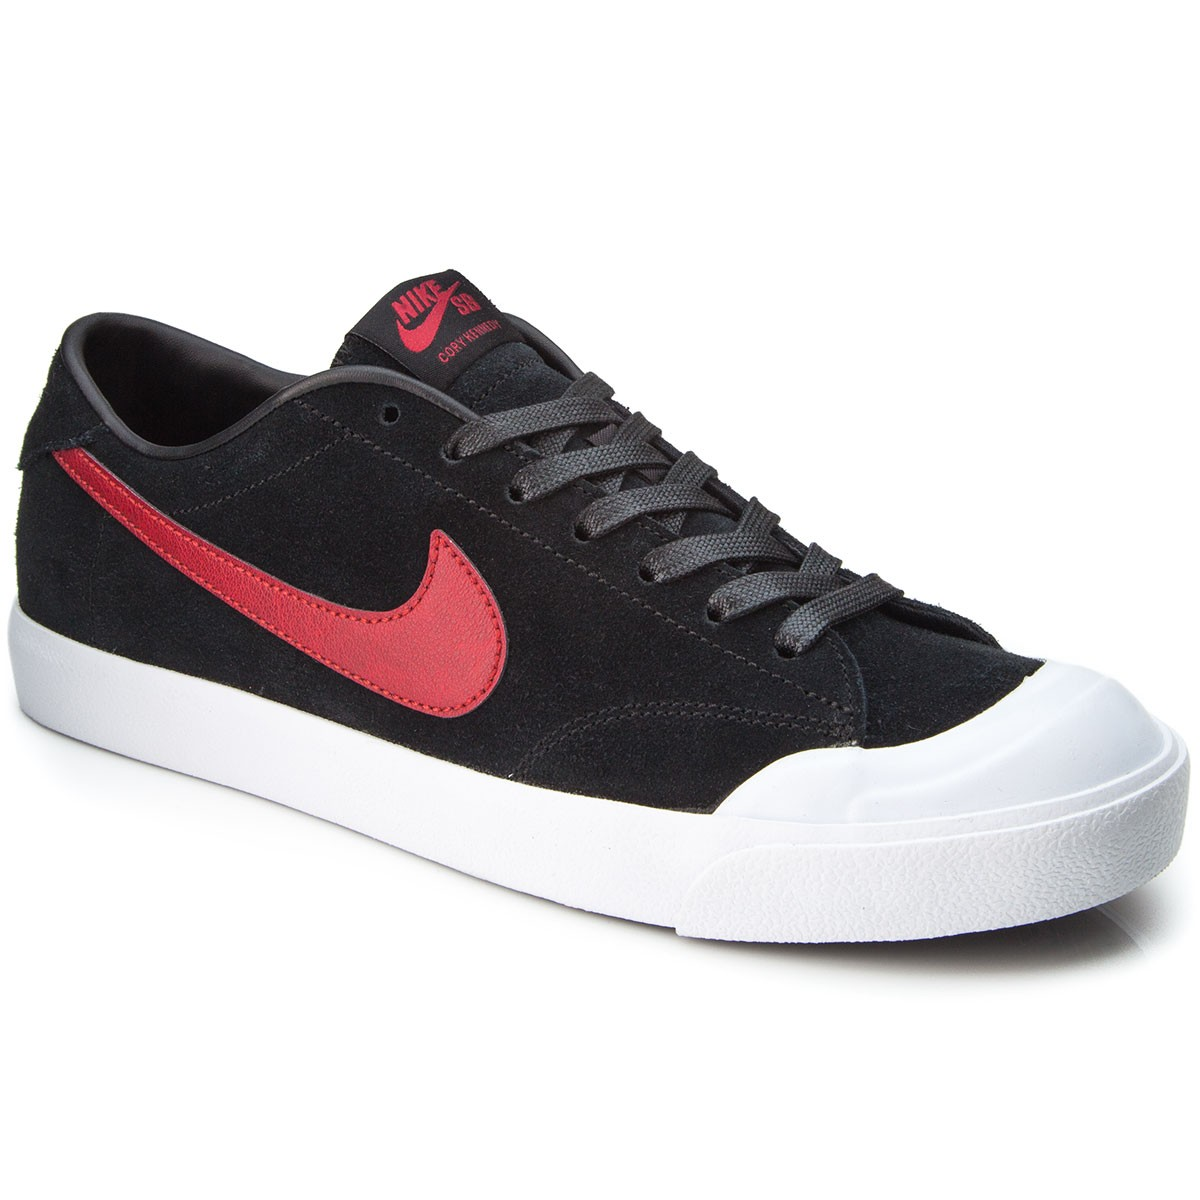 022bbd247a5 nike-zoom-all-court-ck-shoes-black-white-red-1.1506664428.jpg